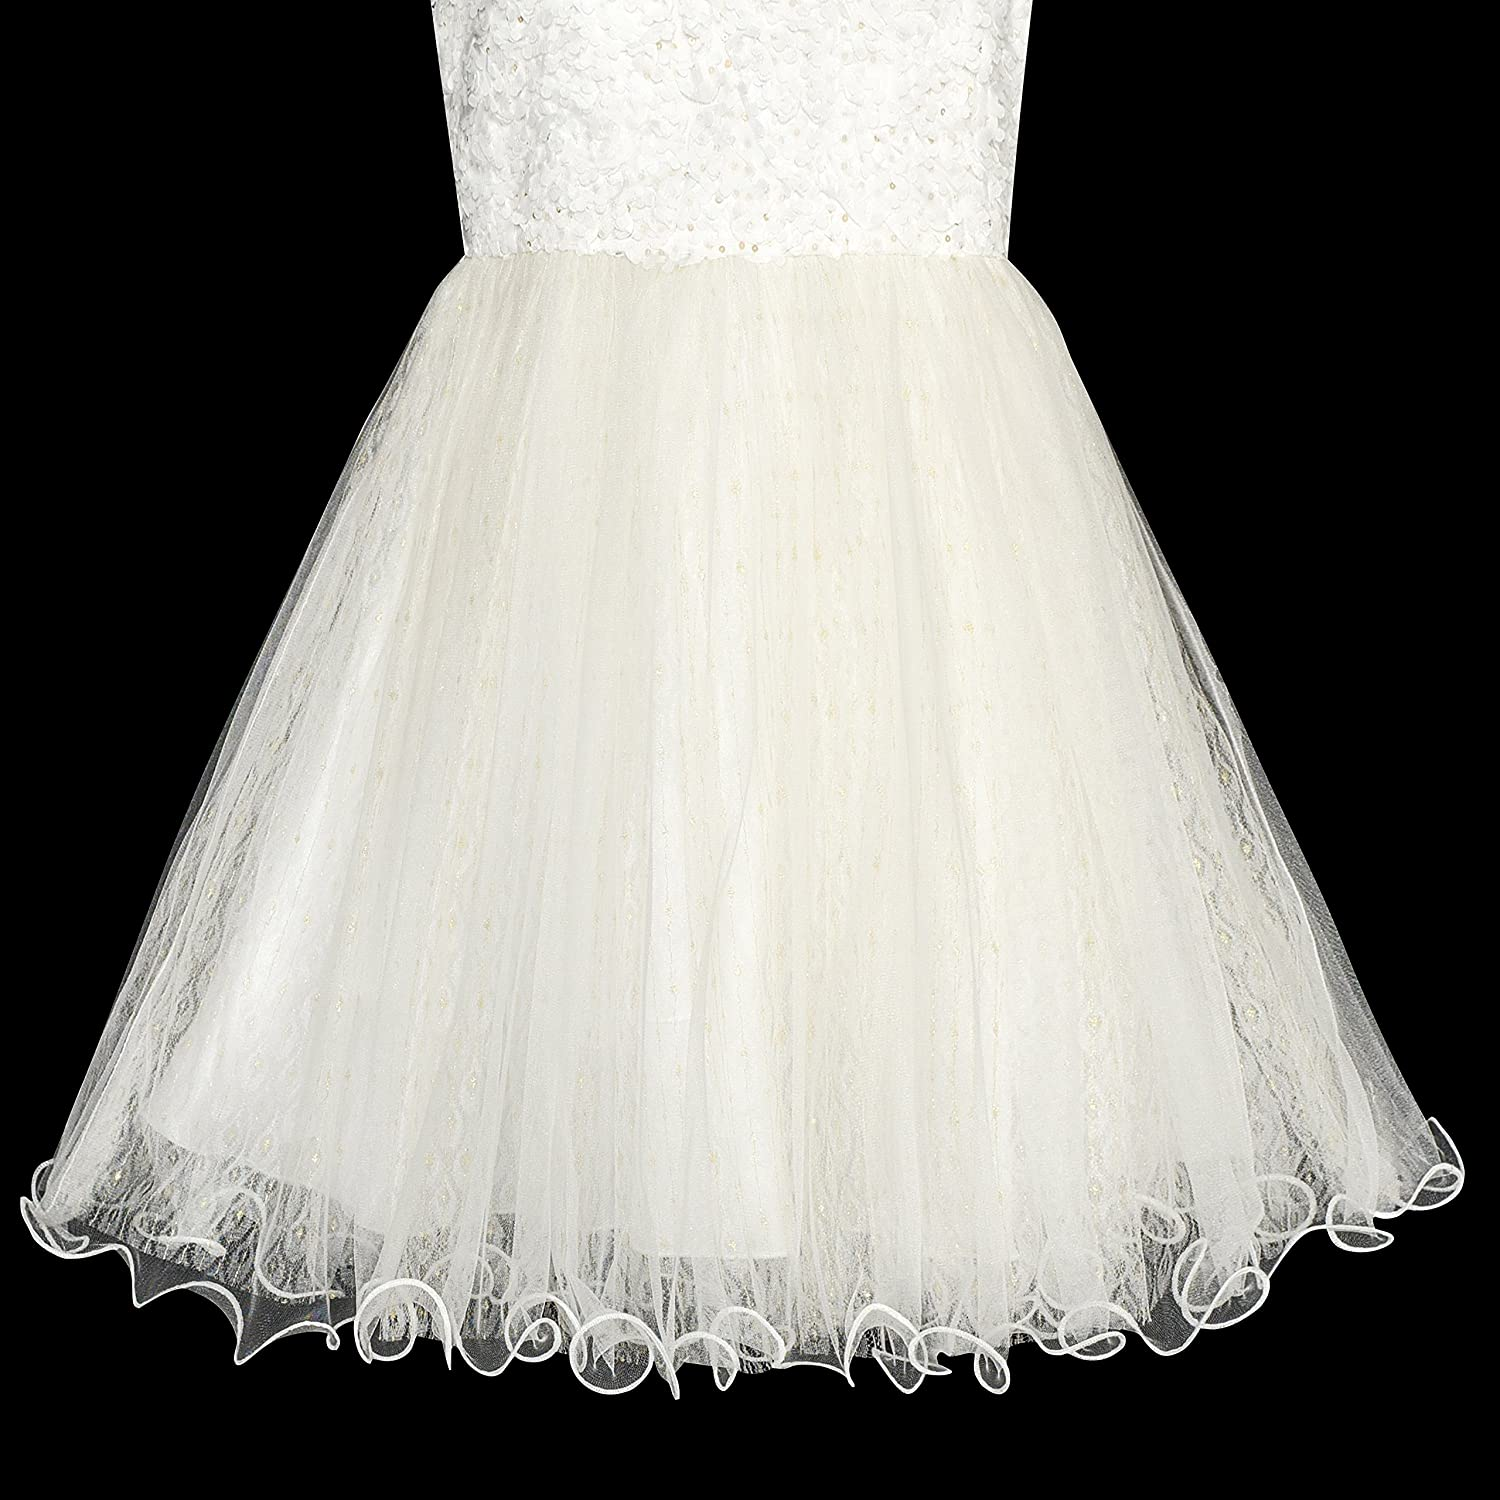 Sunny Fashion Flower Girl Dress Ivory Sequin Bridesmaid Wedding Party Size 6-12